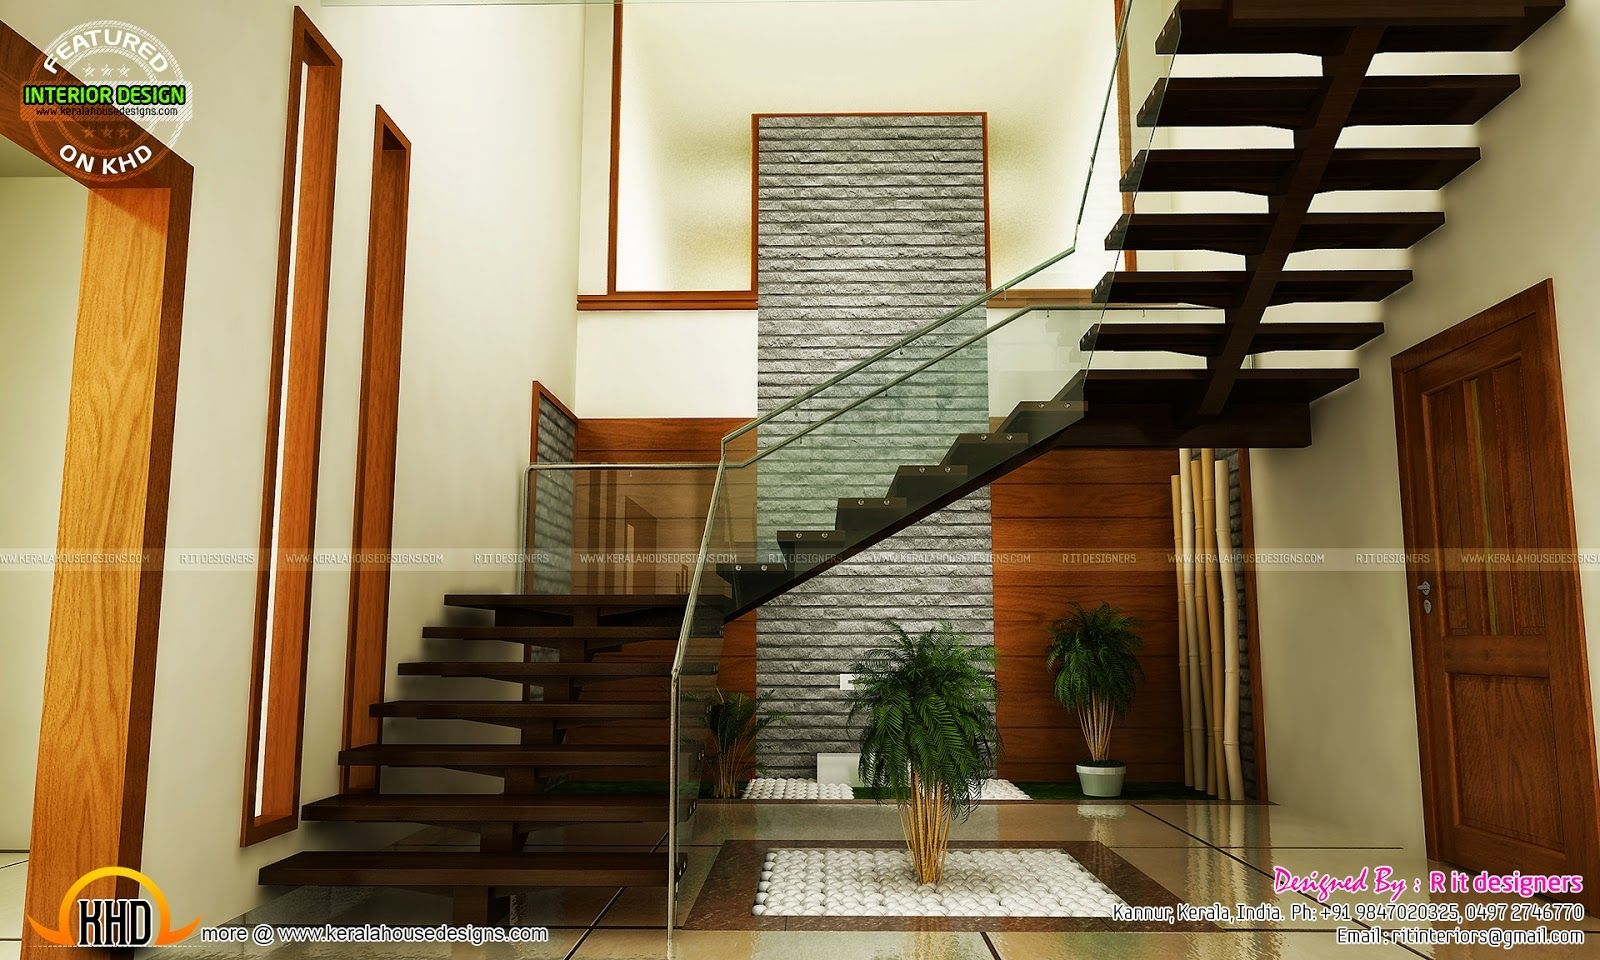 Low Cost Indian Duplex House Staircase Designs | Duplex House Steps Design | New | Cement | Wood | Spiral Staircase | Steel